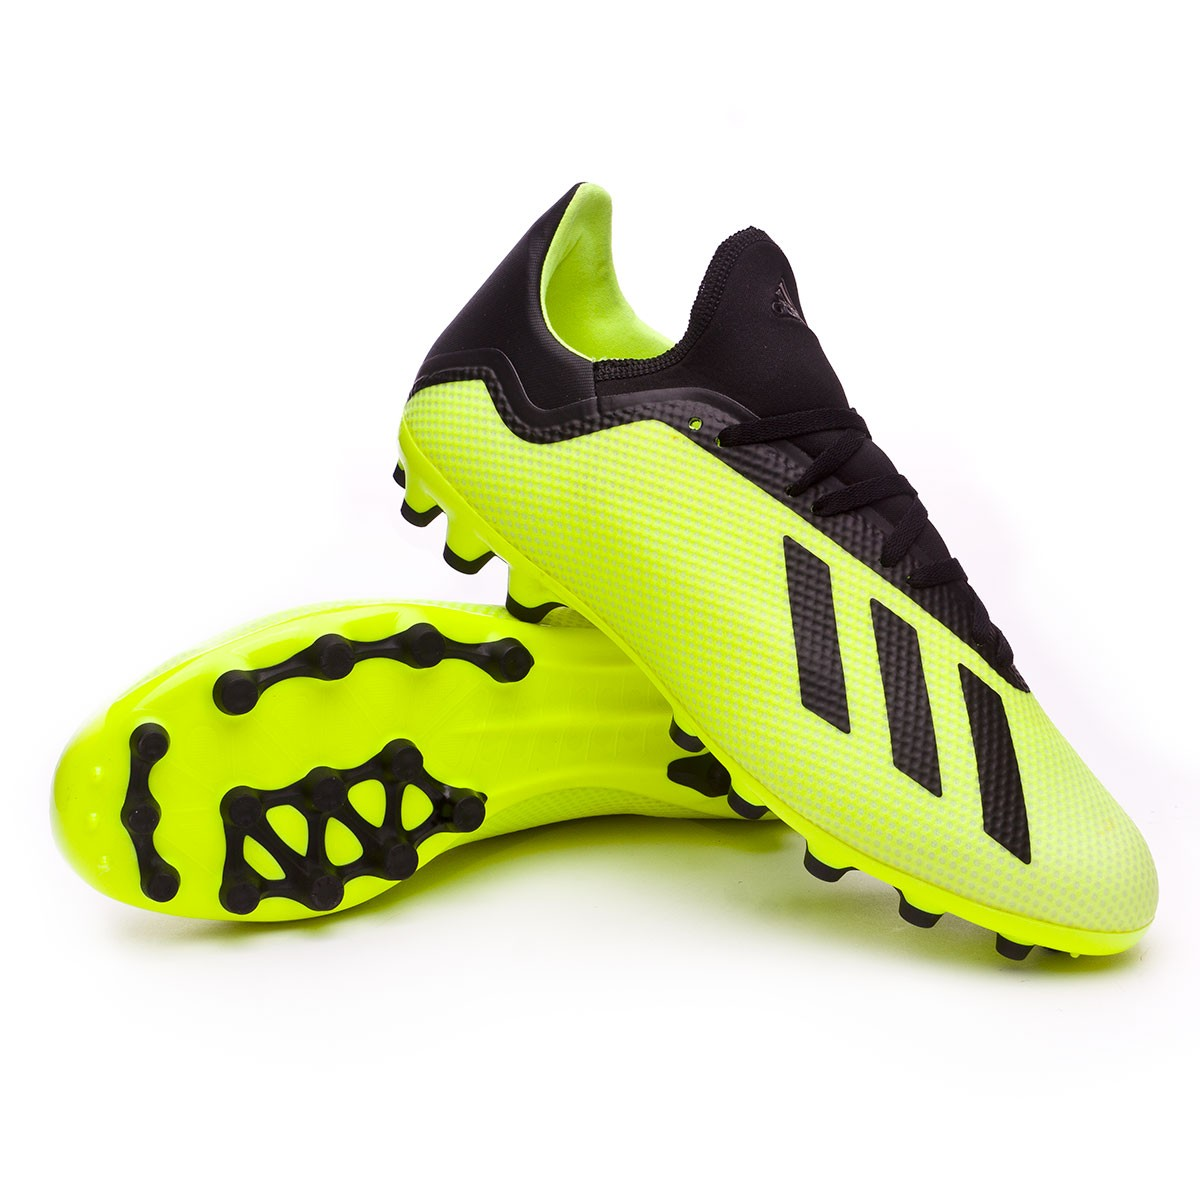 new styles 25f68 84517 Boot adidas X 18.3 AG Solar yellow-Core black-White - Football store Fútbol  Emotion